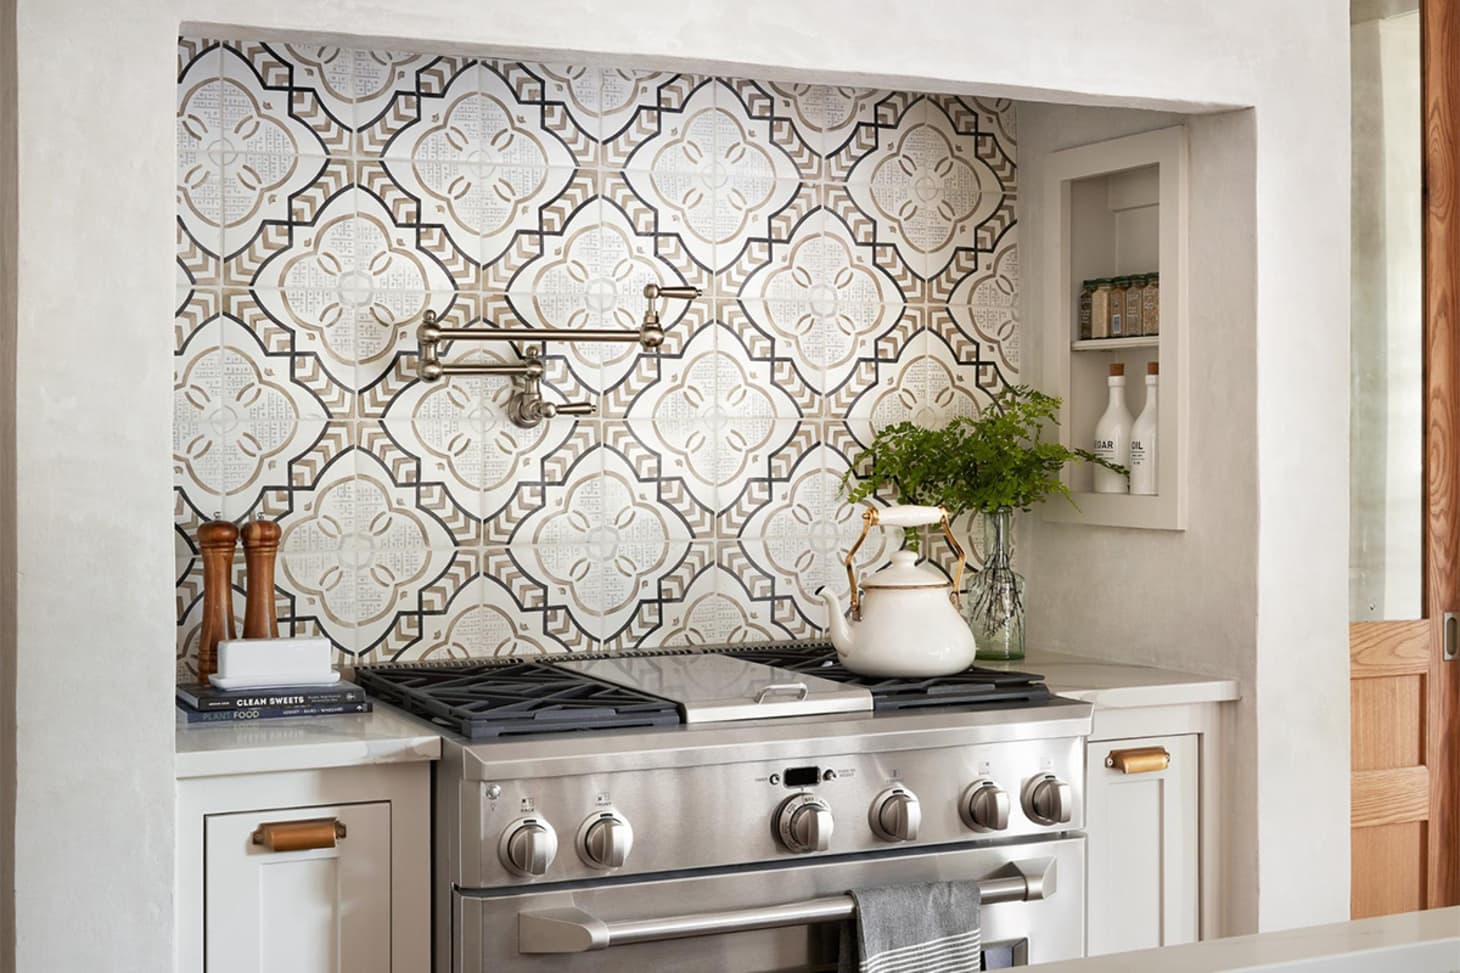 Best Fixer Upper Kitchen Designs From Joanna Gaines Apartment Therapy